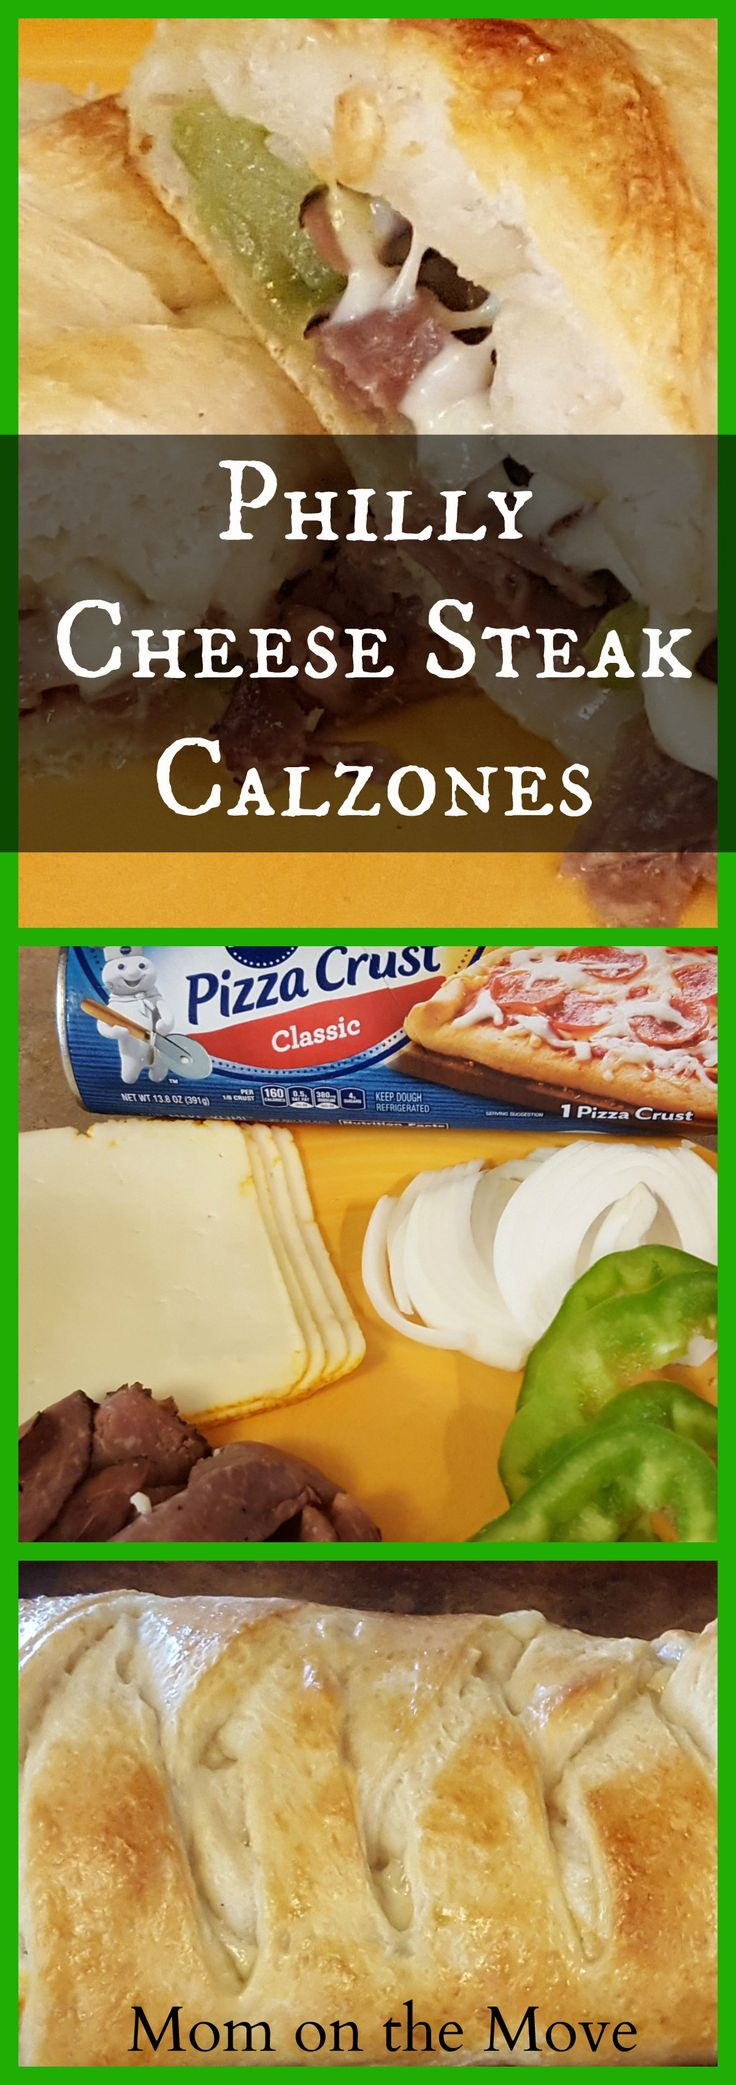 philly cheese steak calzones